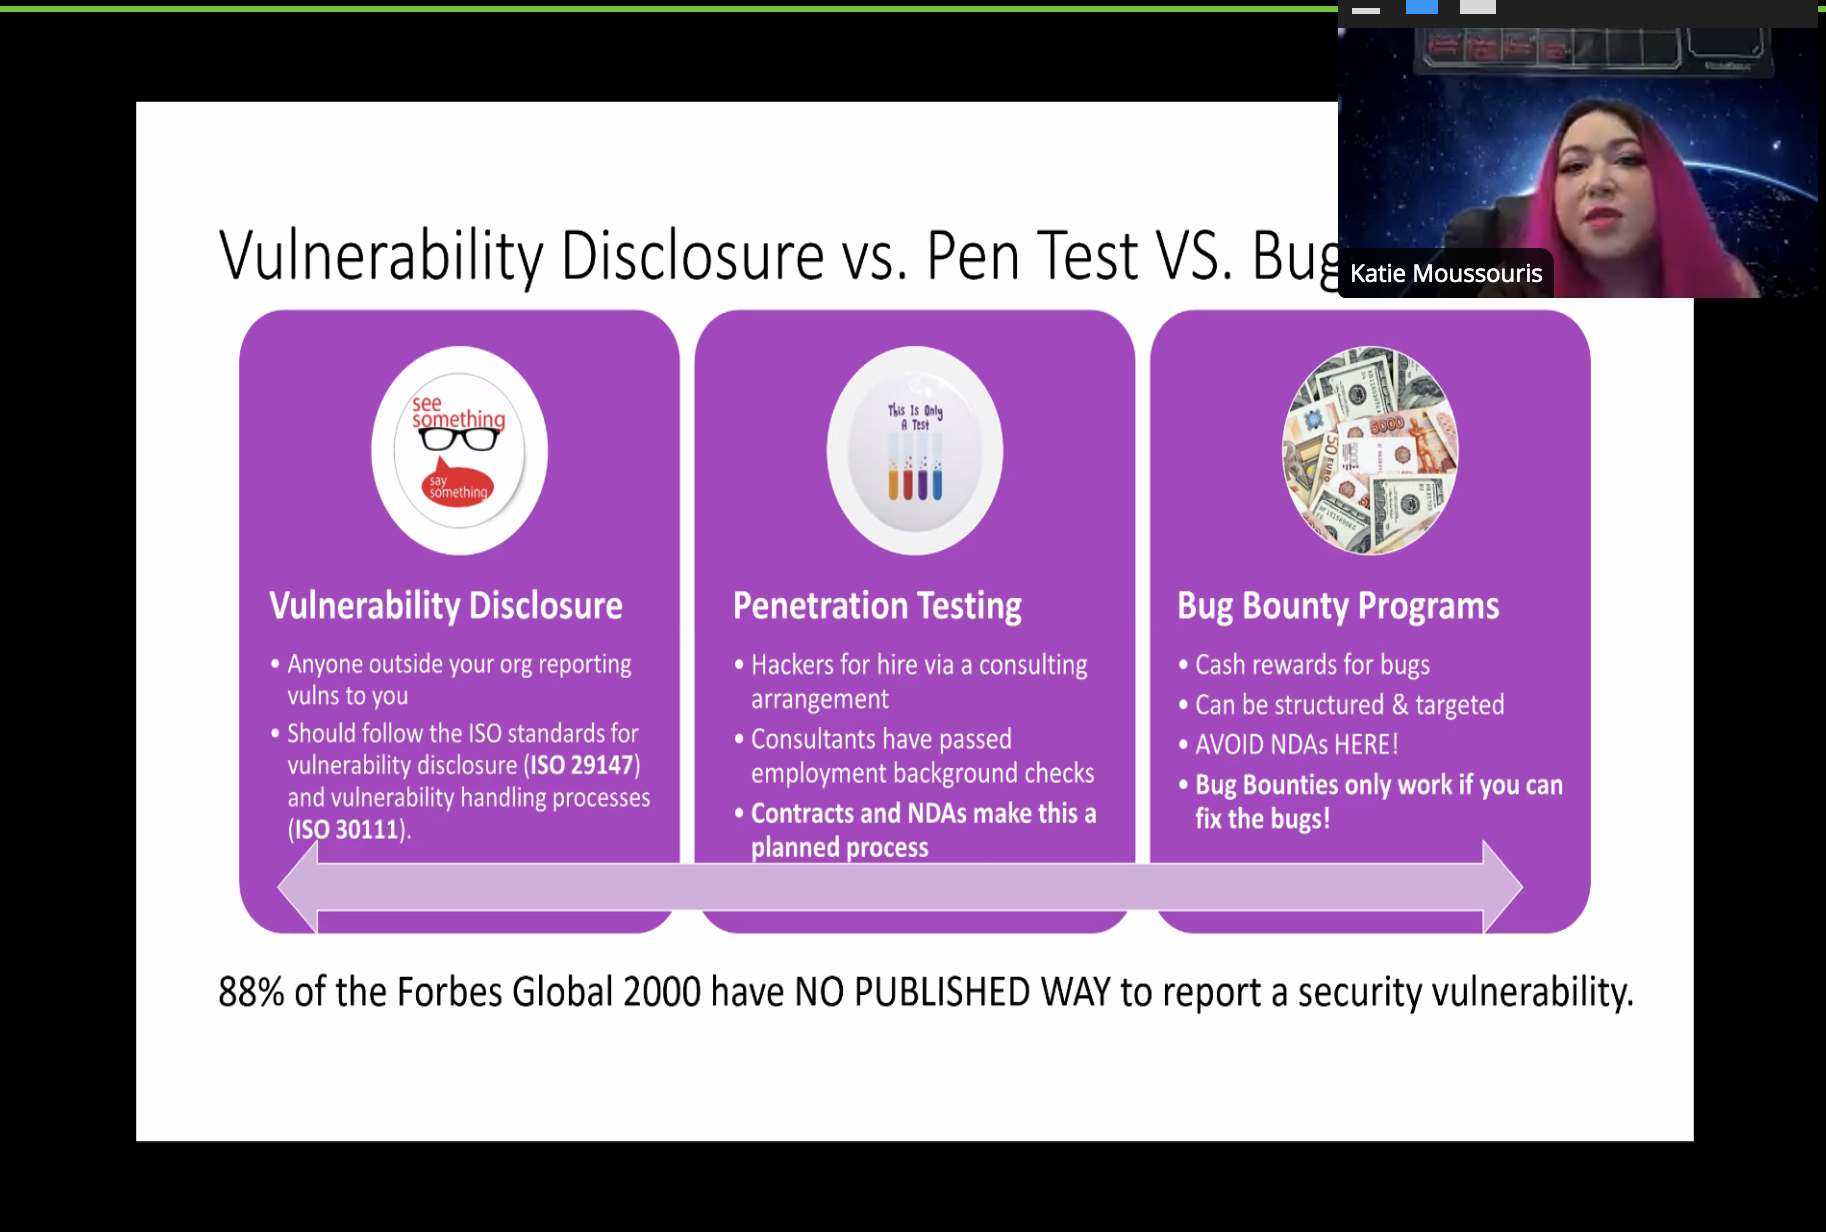 bug bounty program Katie Moussouris